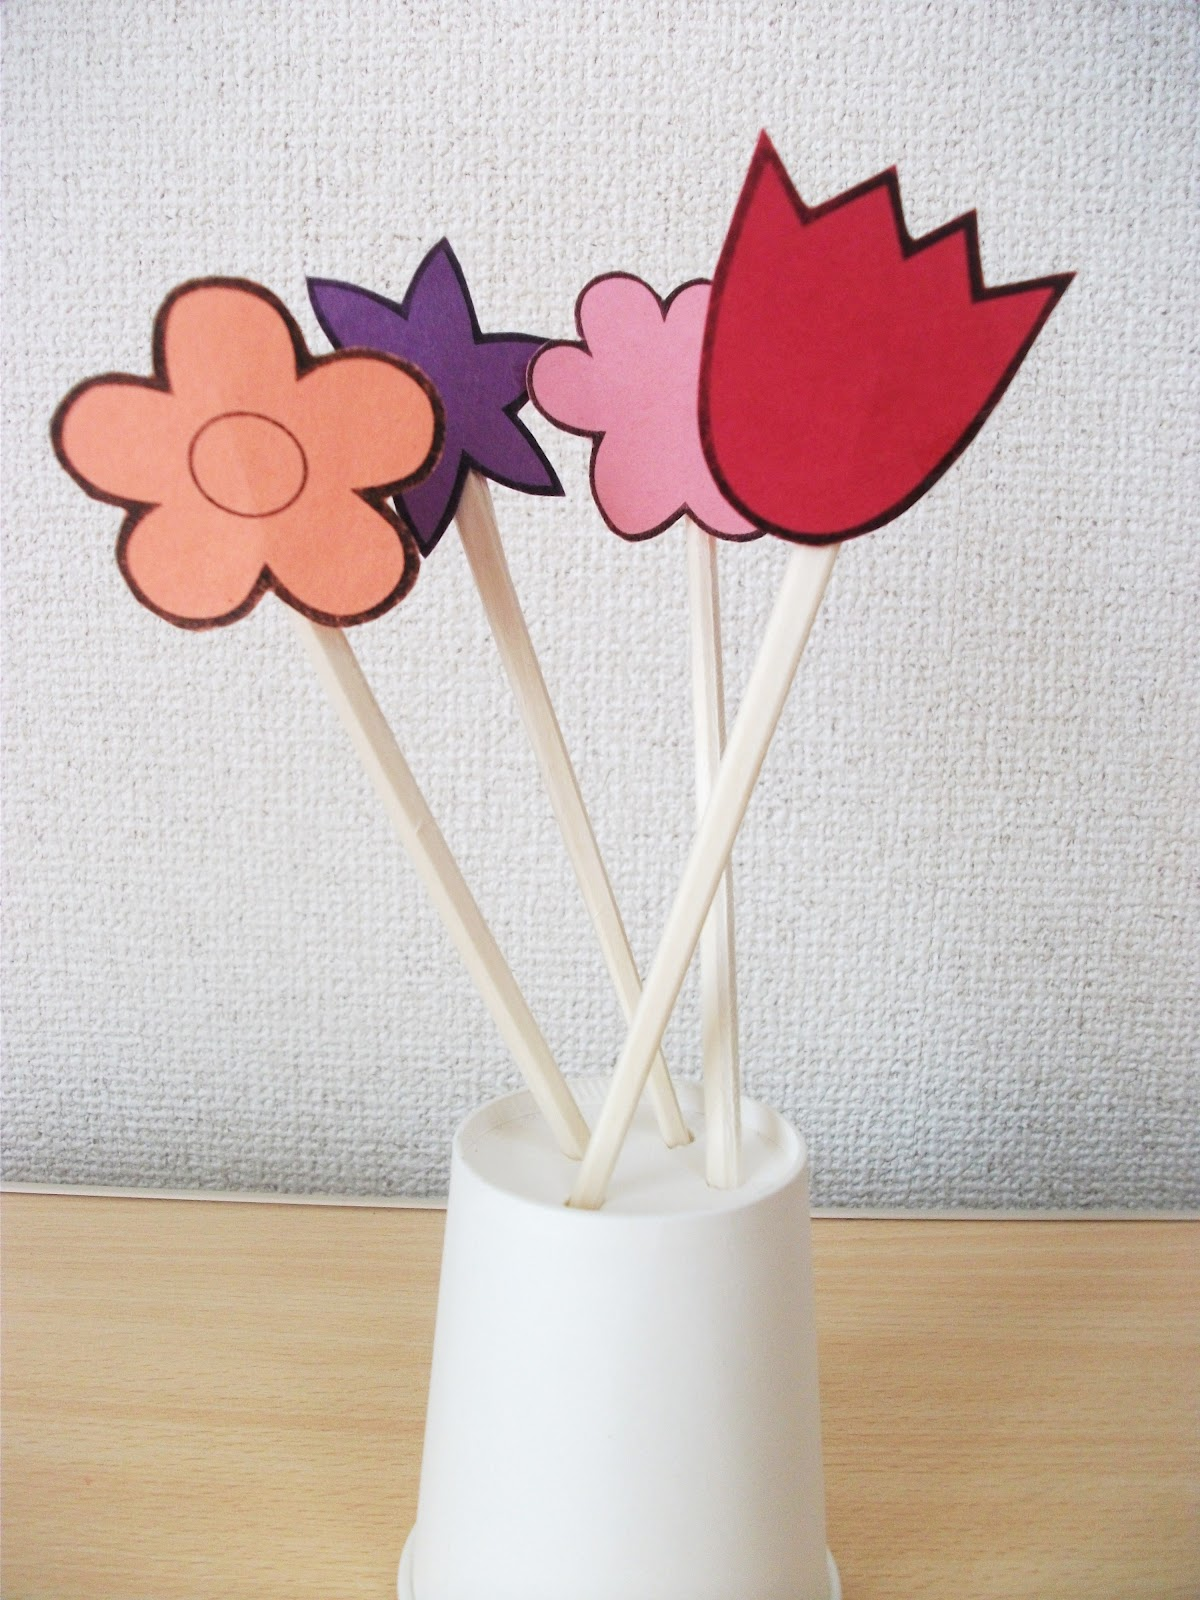 Spring Flowers And Vase Chopsticks Craft Preschool Education For Kids